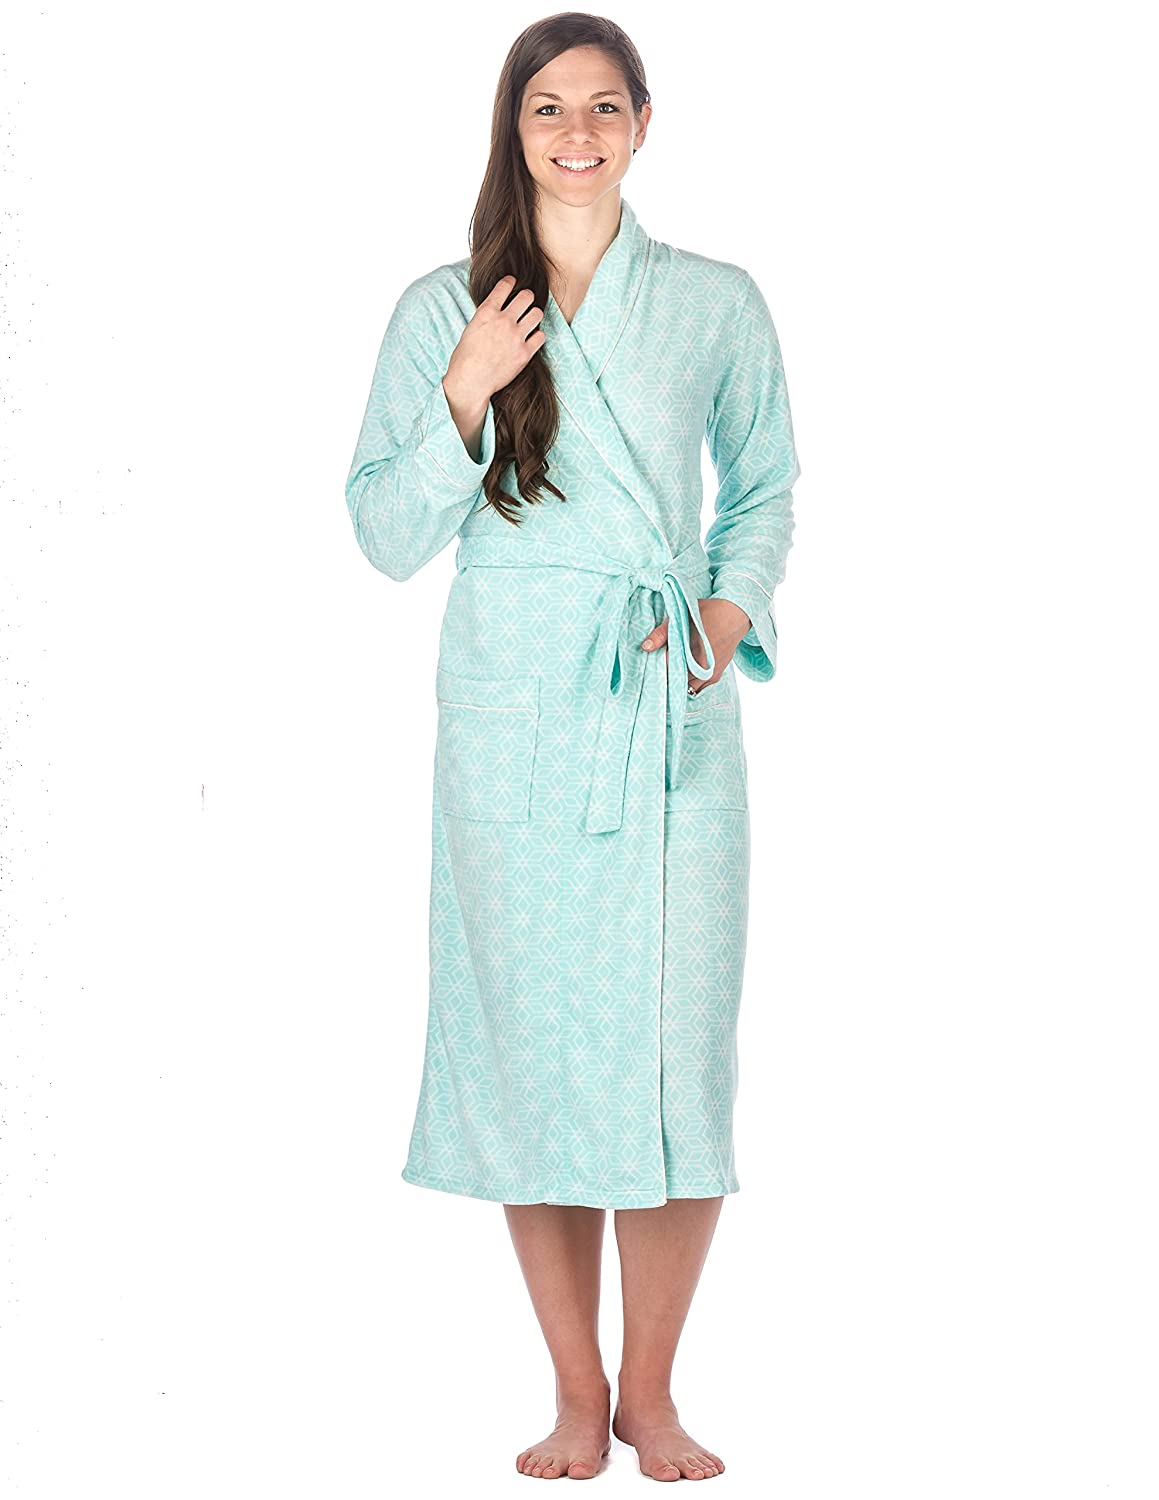 Noble Mount Womens Microfleece Dressing Gown/ Robe/ House Coat